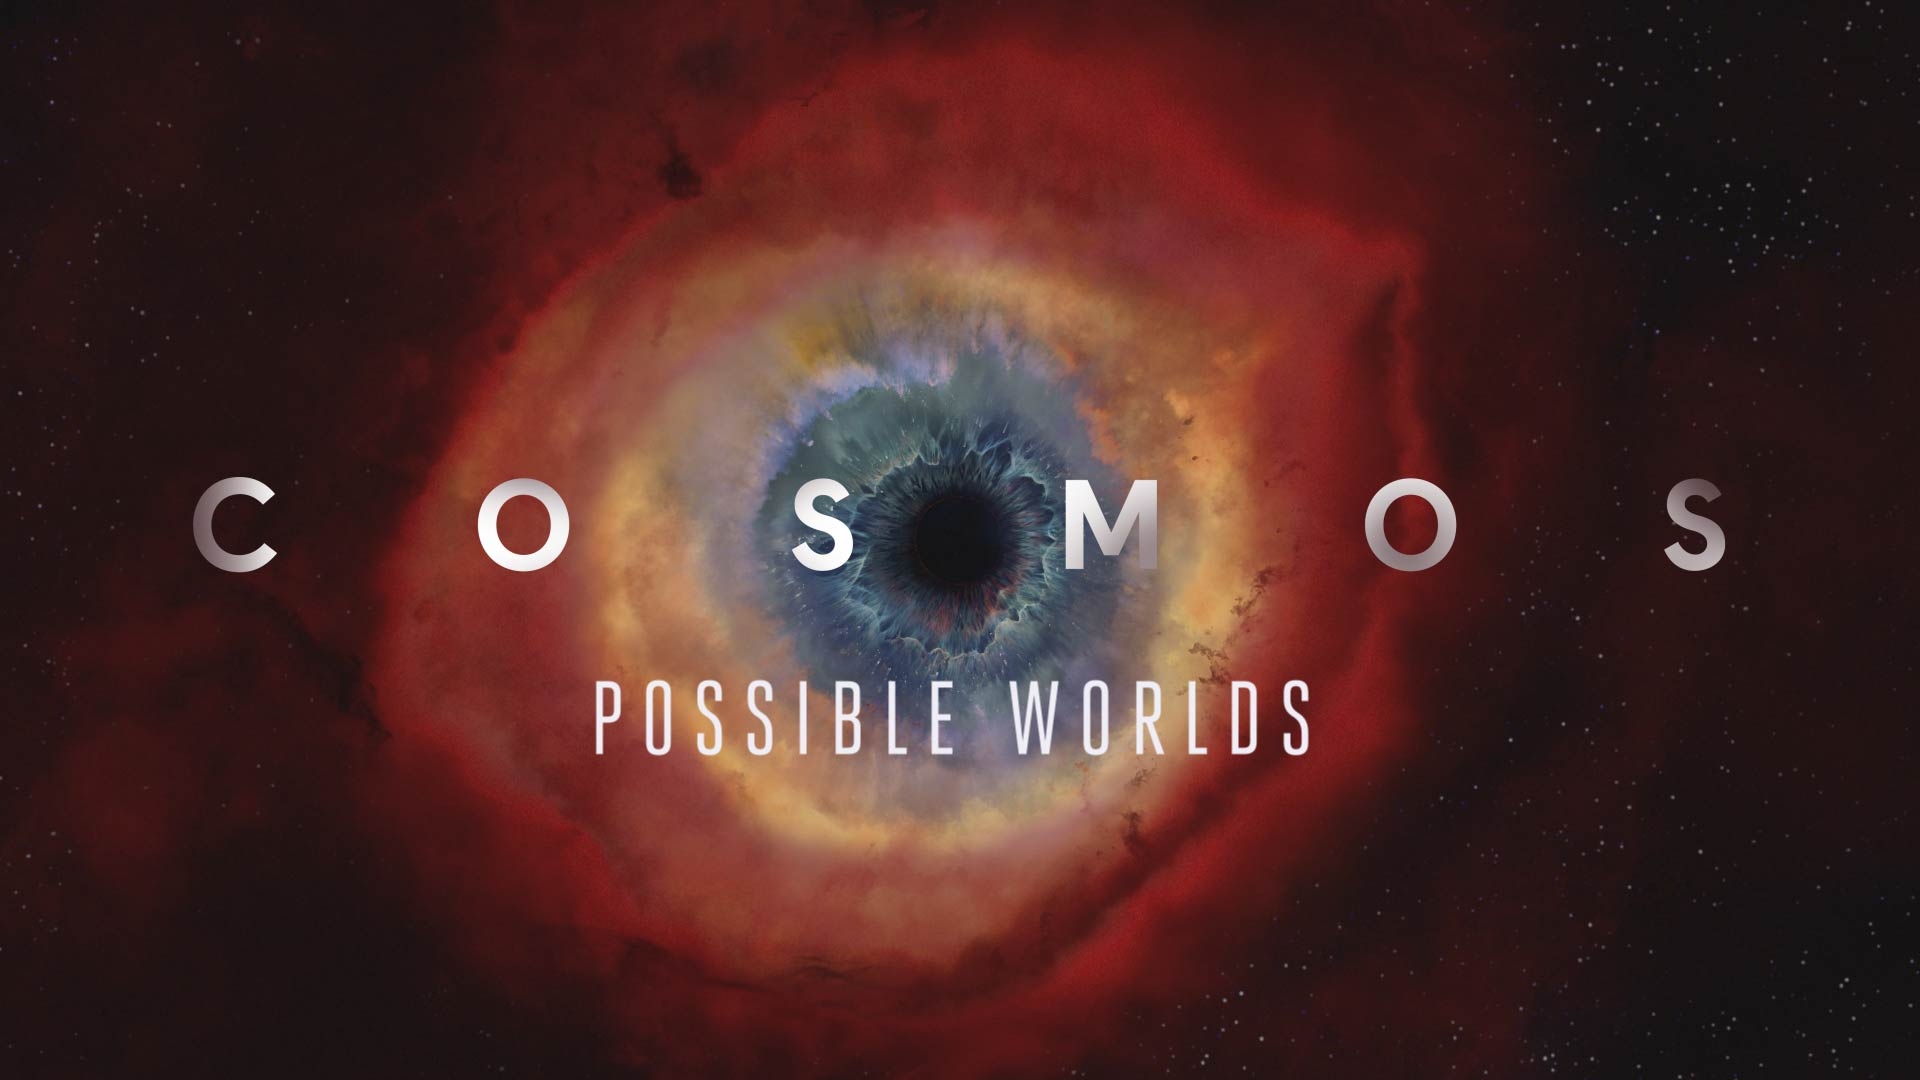 Cosmos to return in 2019 with 'Possible Worlds'